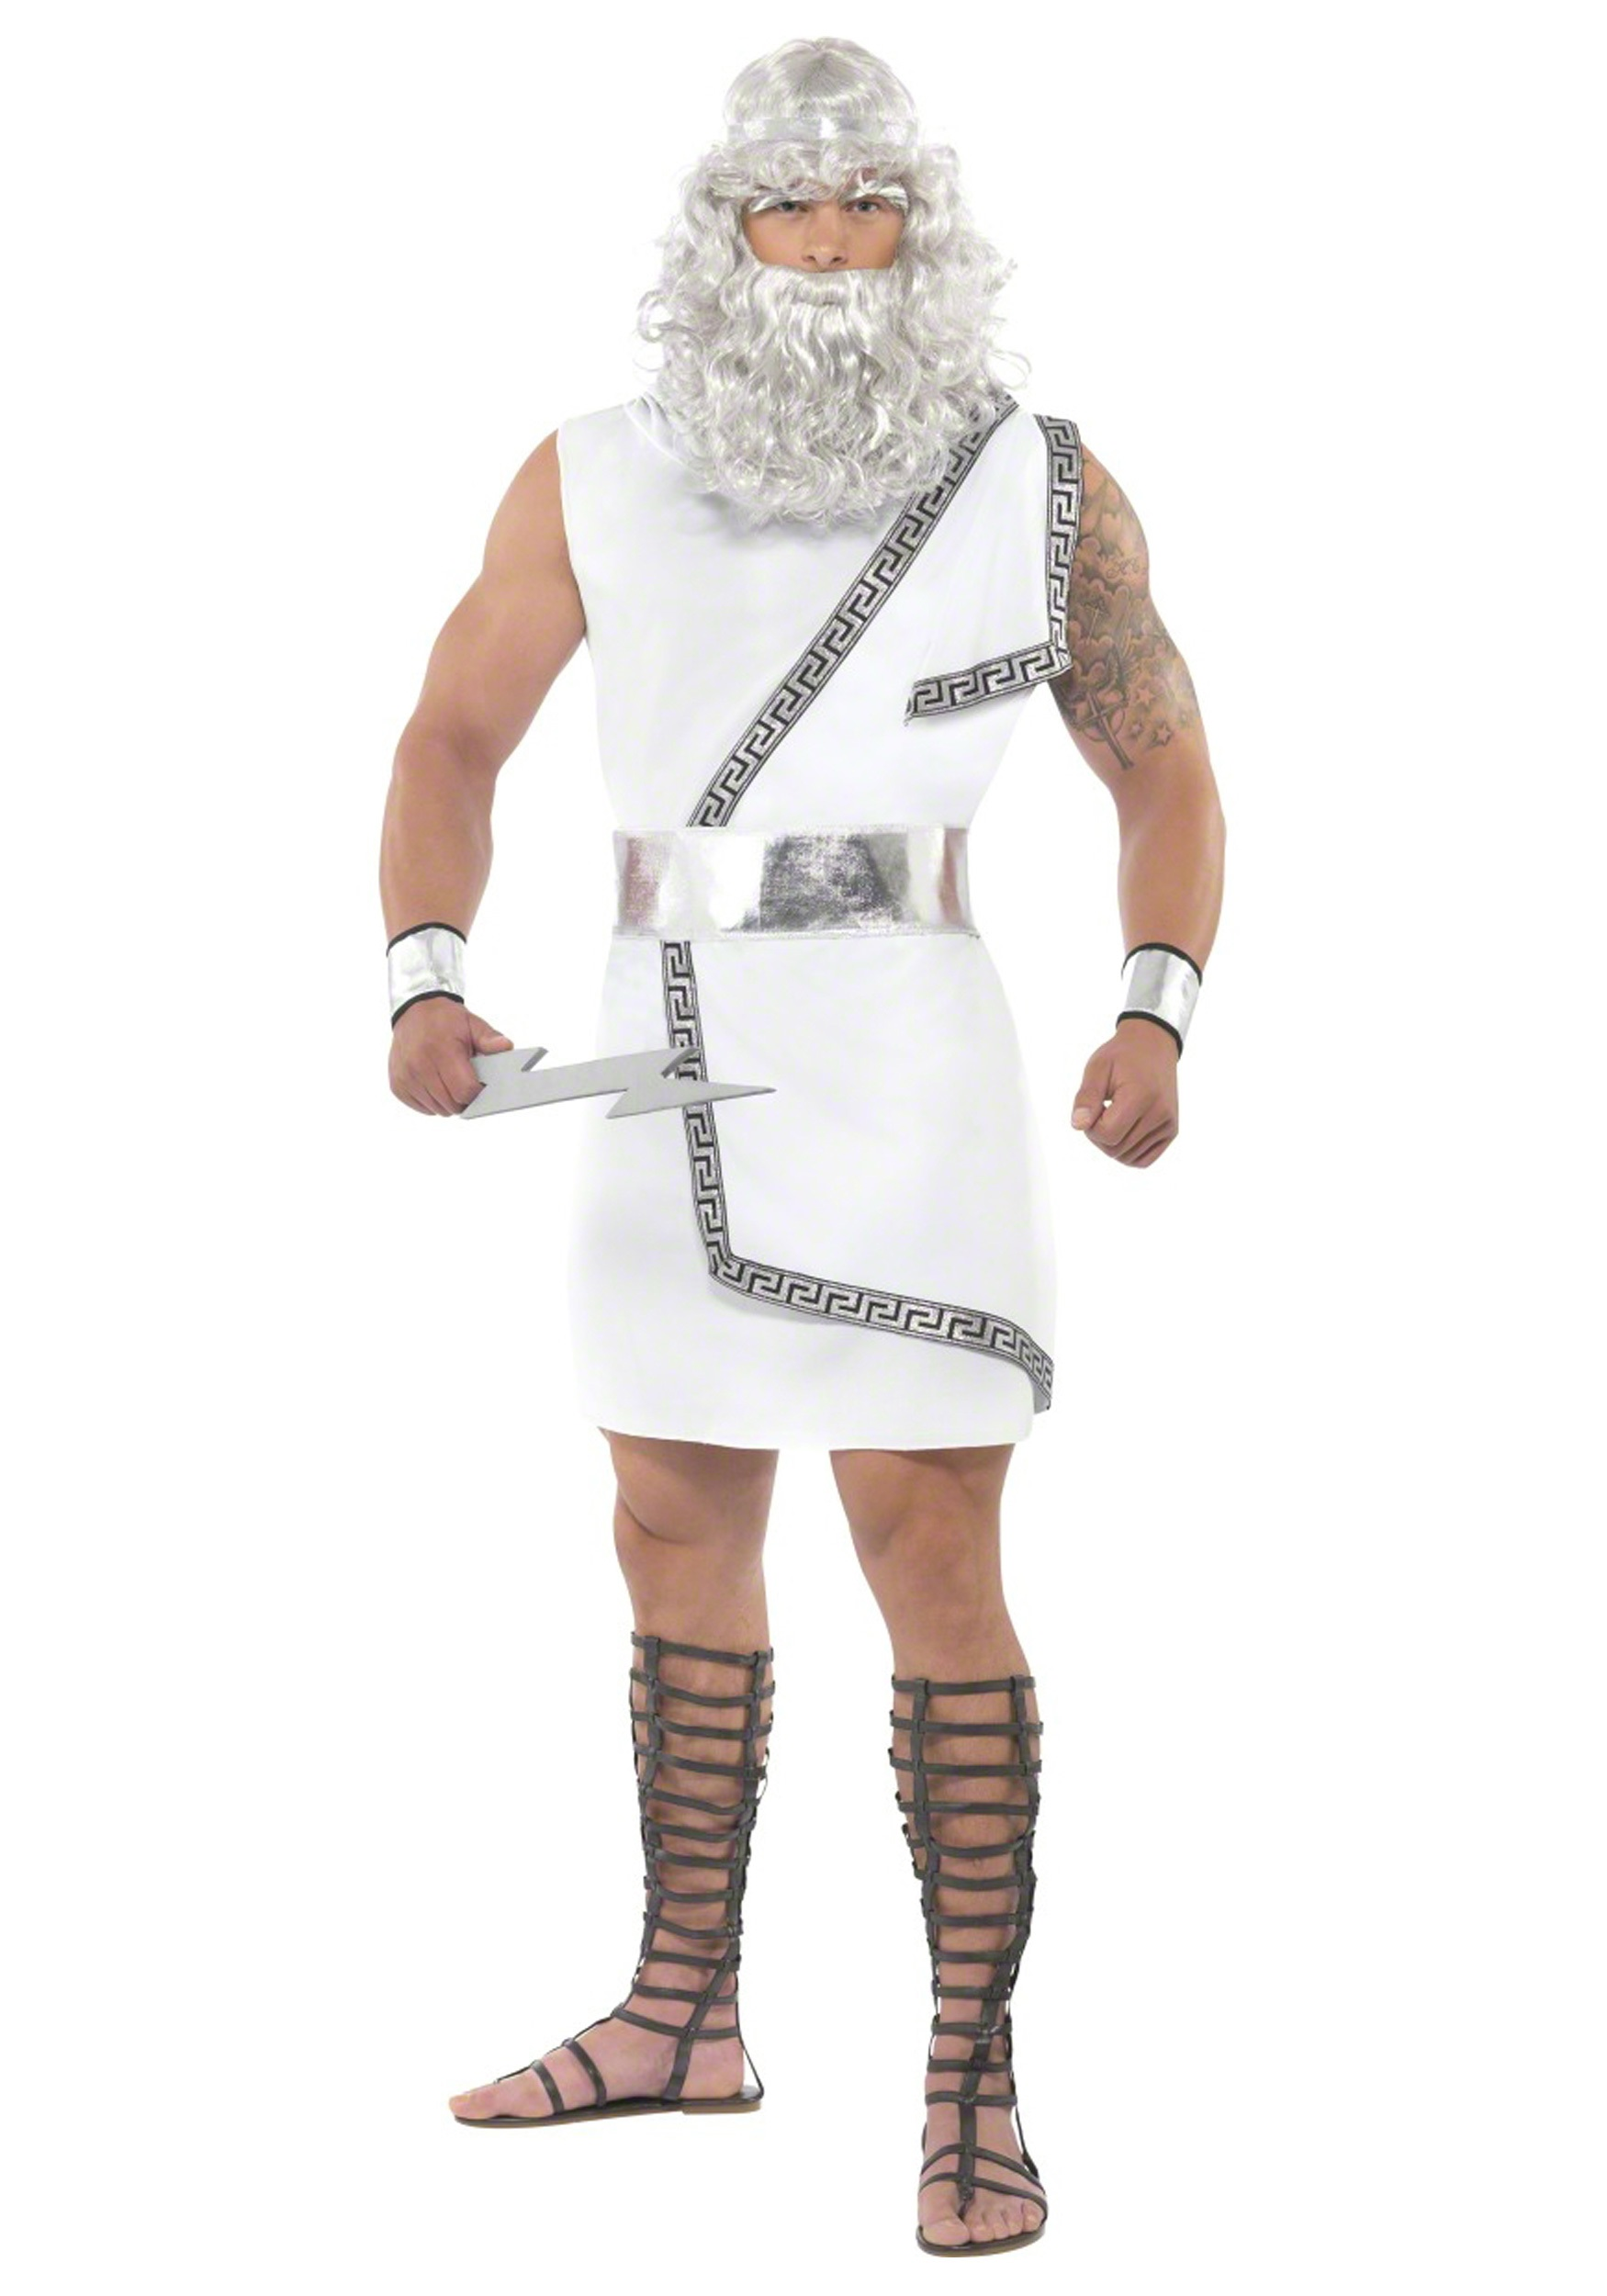 zeus olympic god costume - historical costume ideas for men